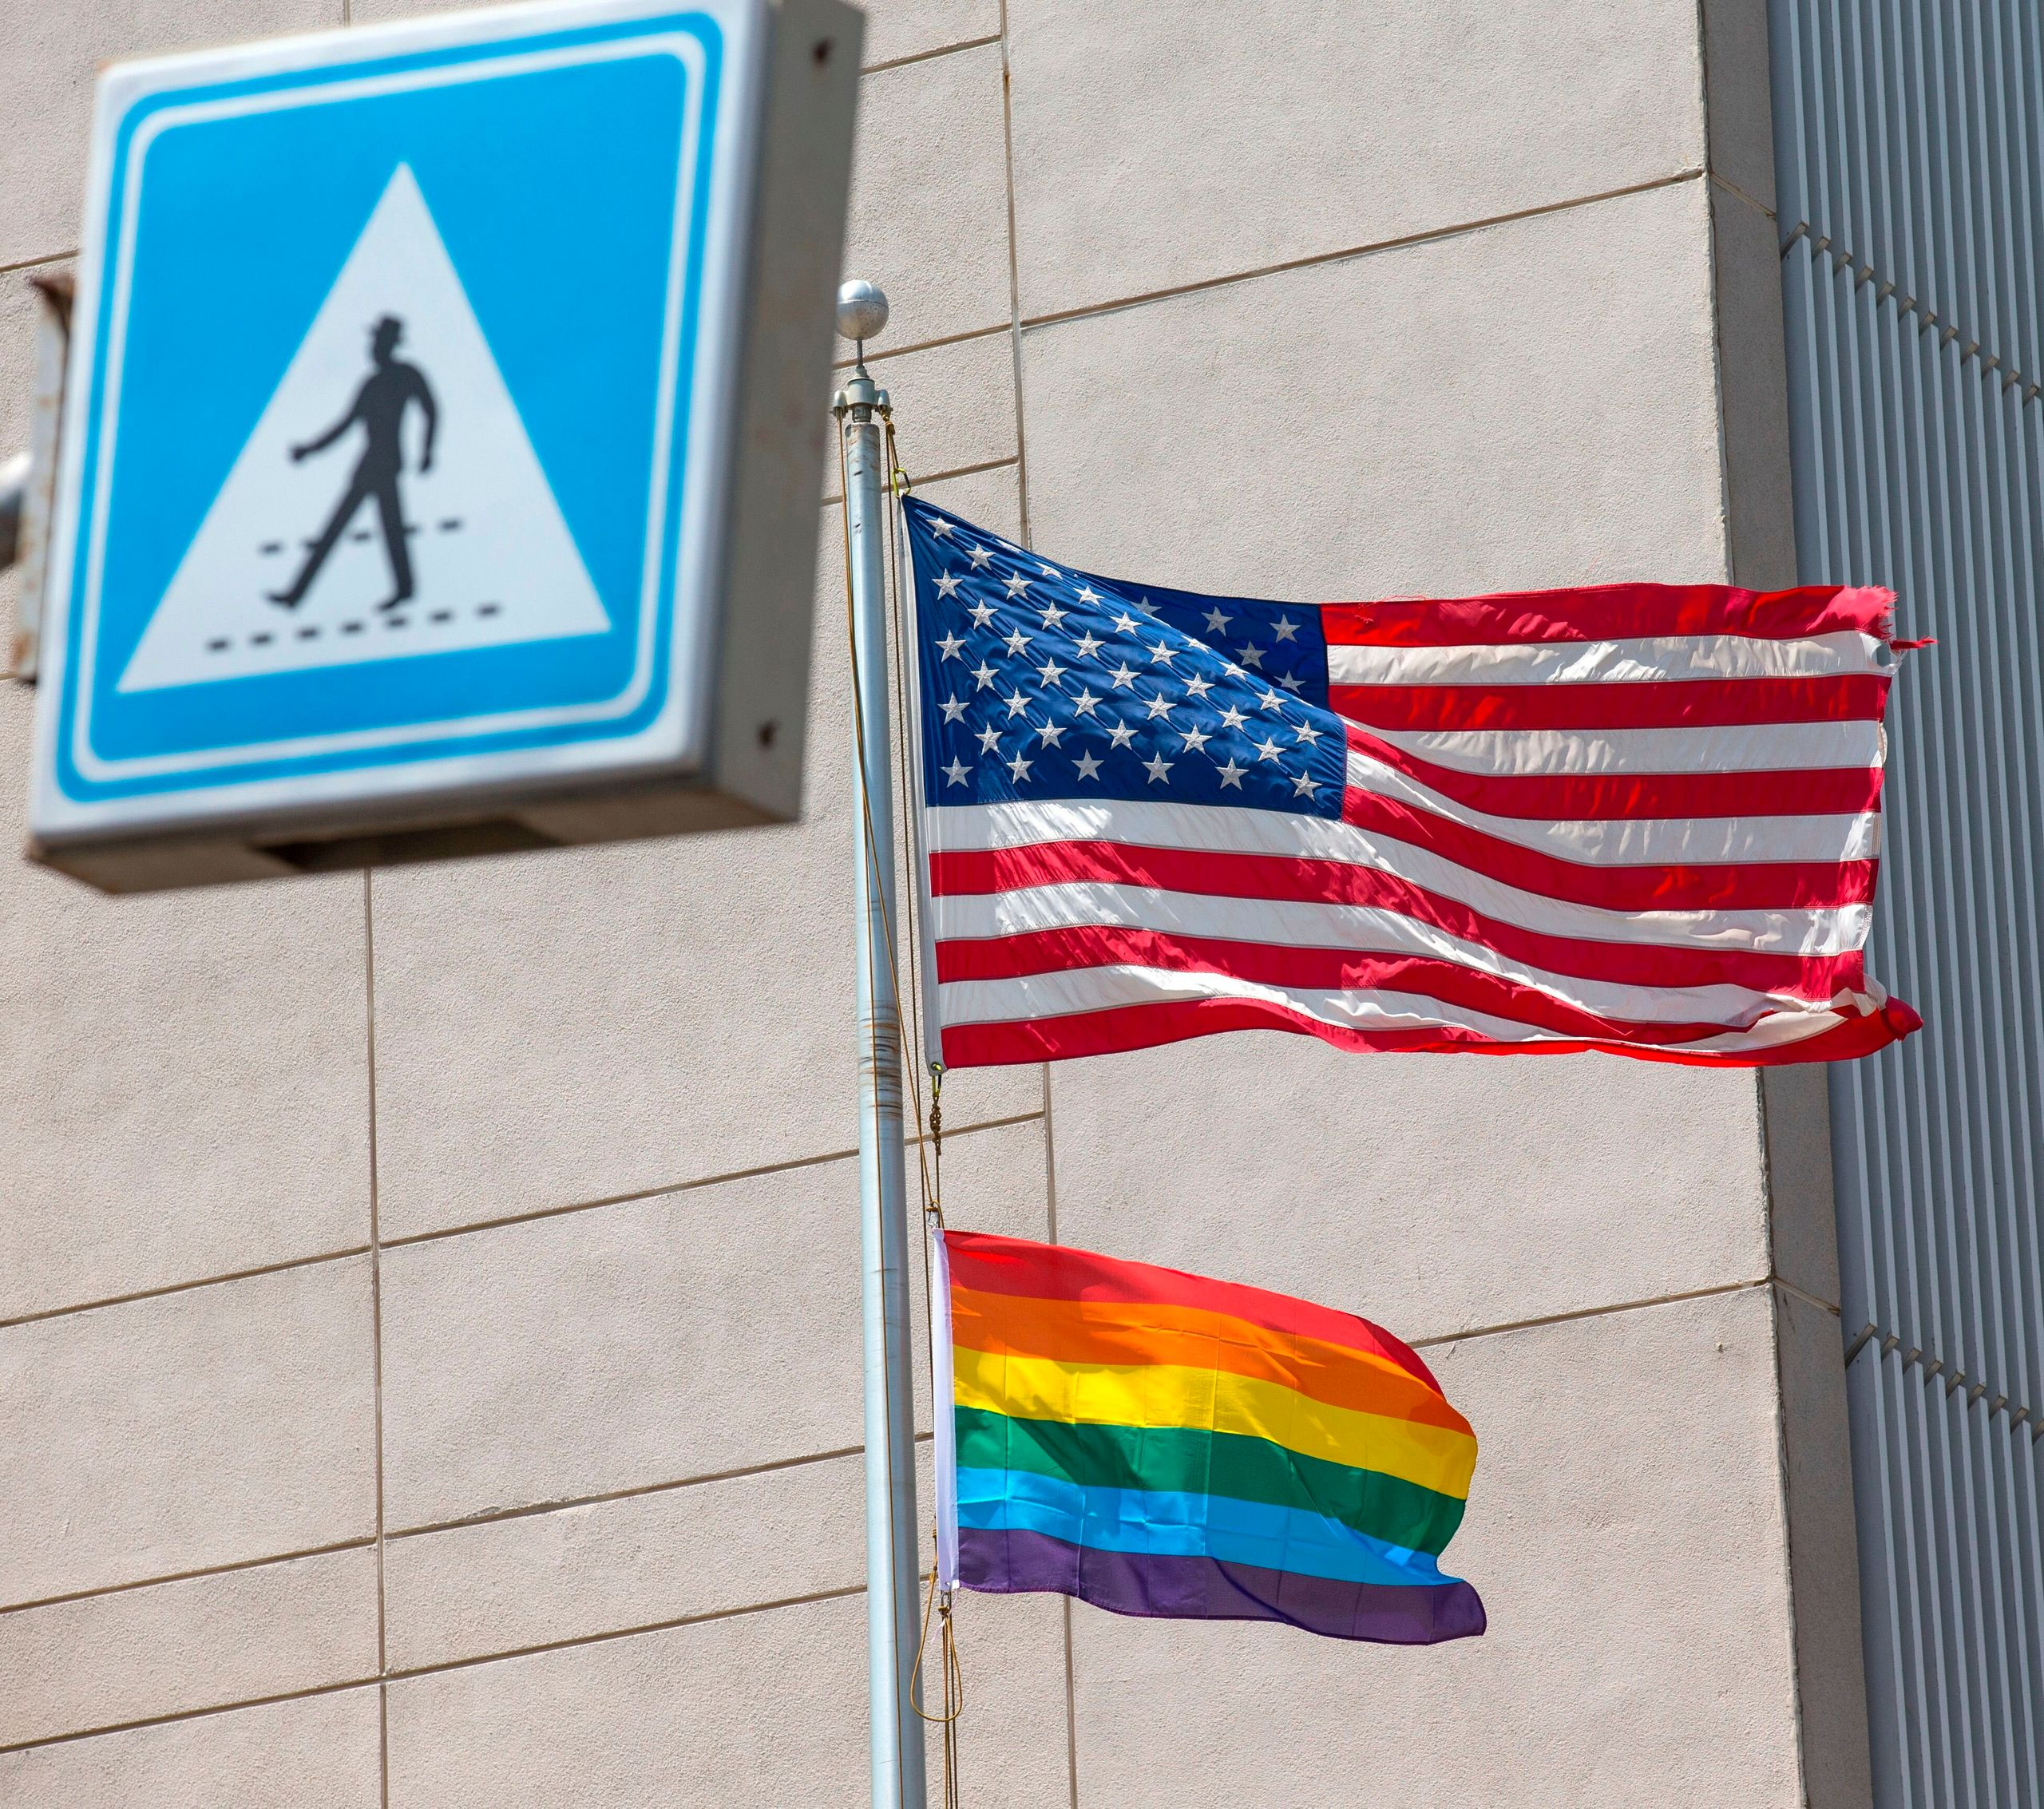 President Donald Trump barred U.S. embassies from flying LGBTQ+ pride flags. President Joe Biden rescinded the policy in Apri